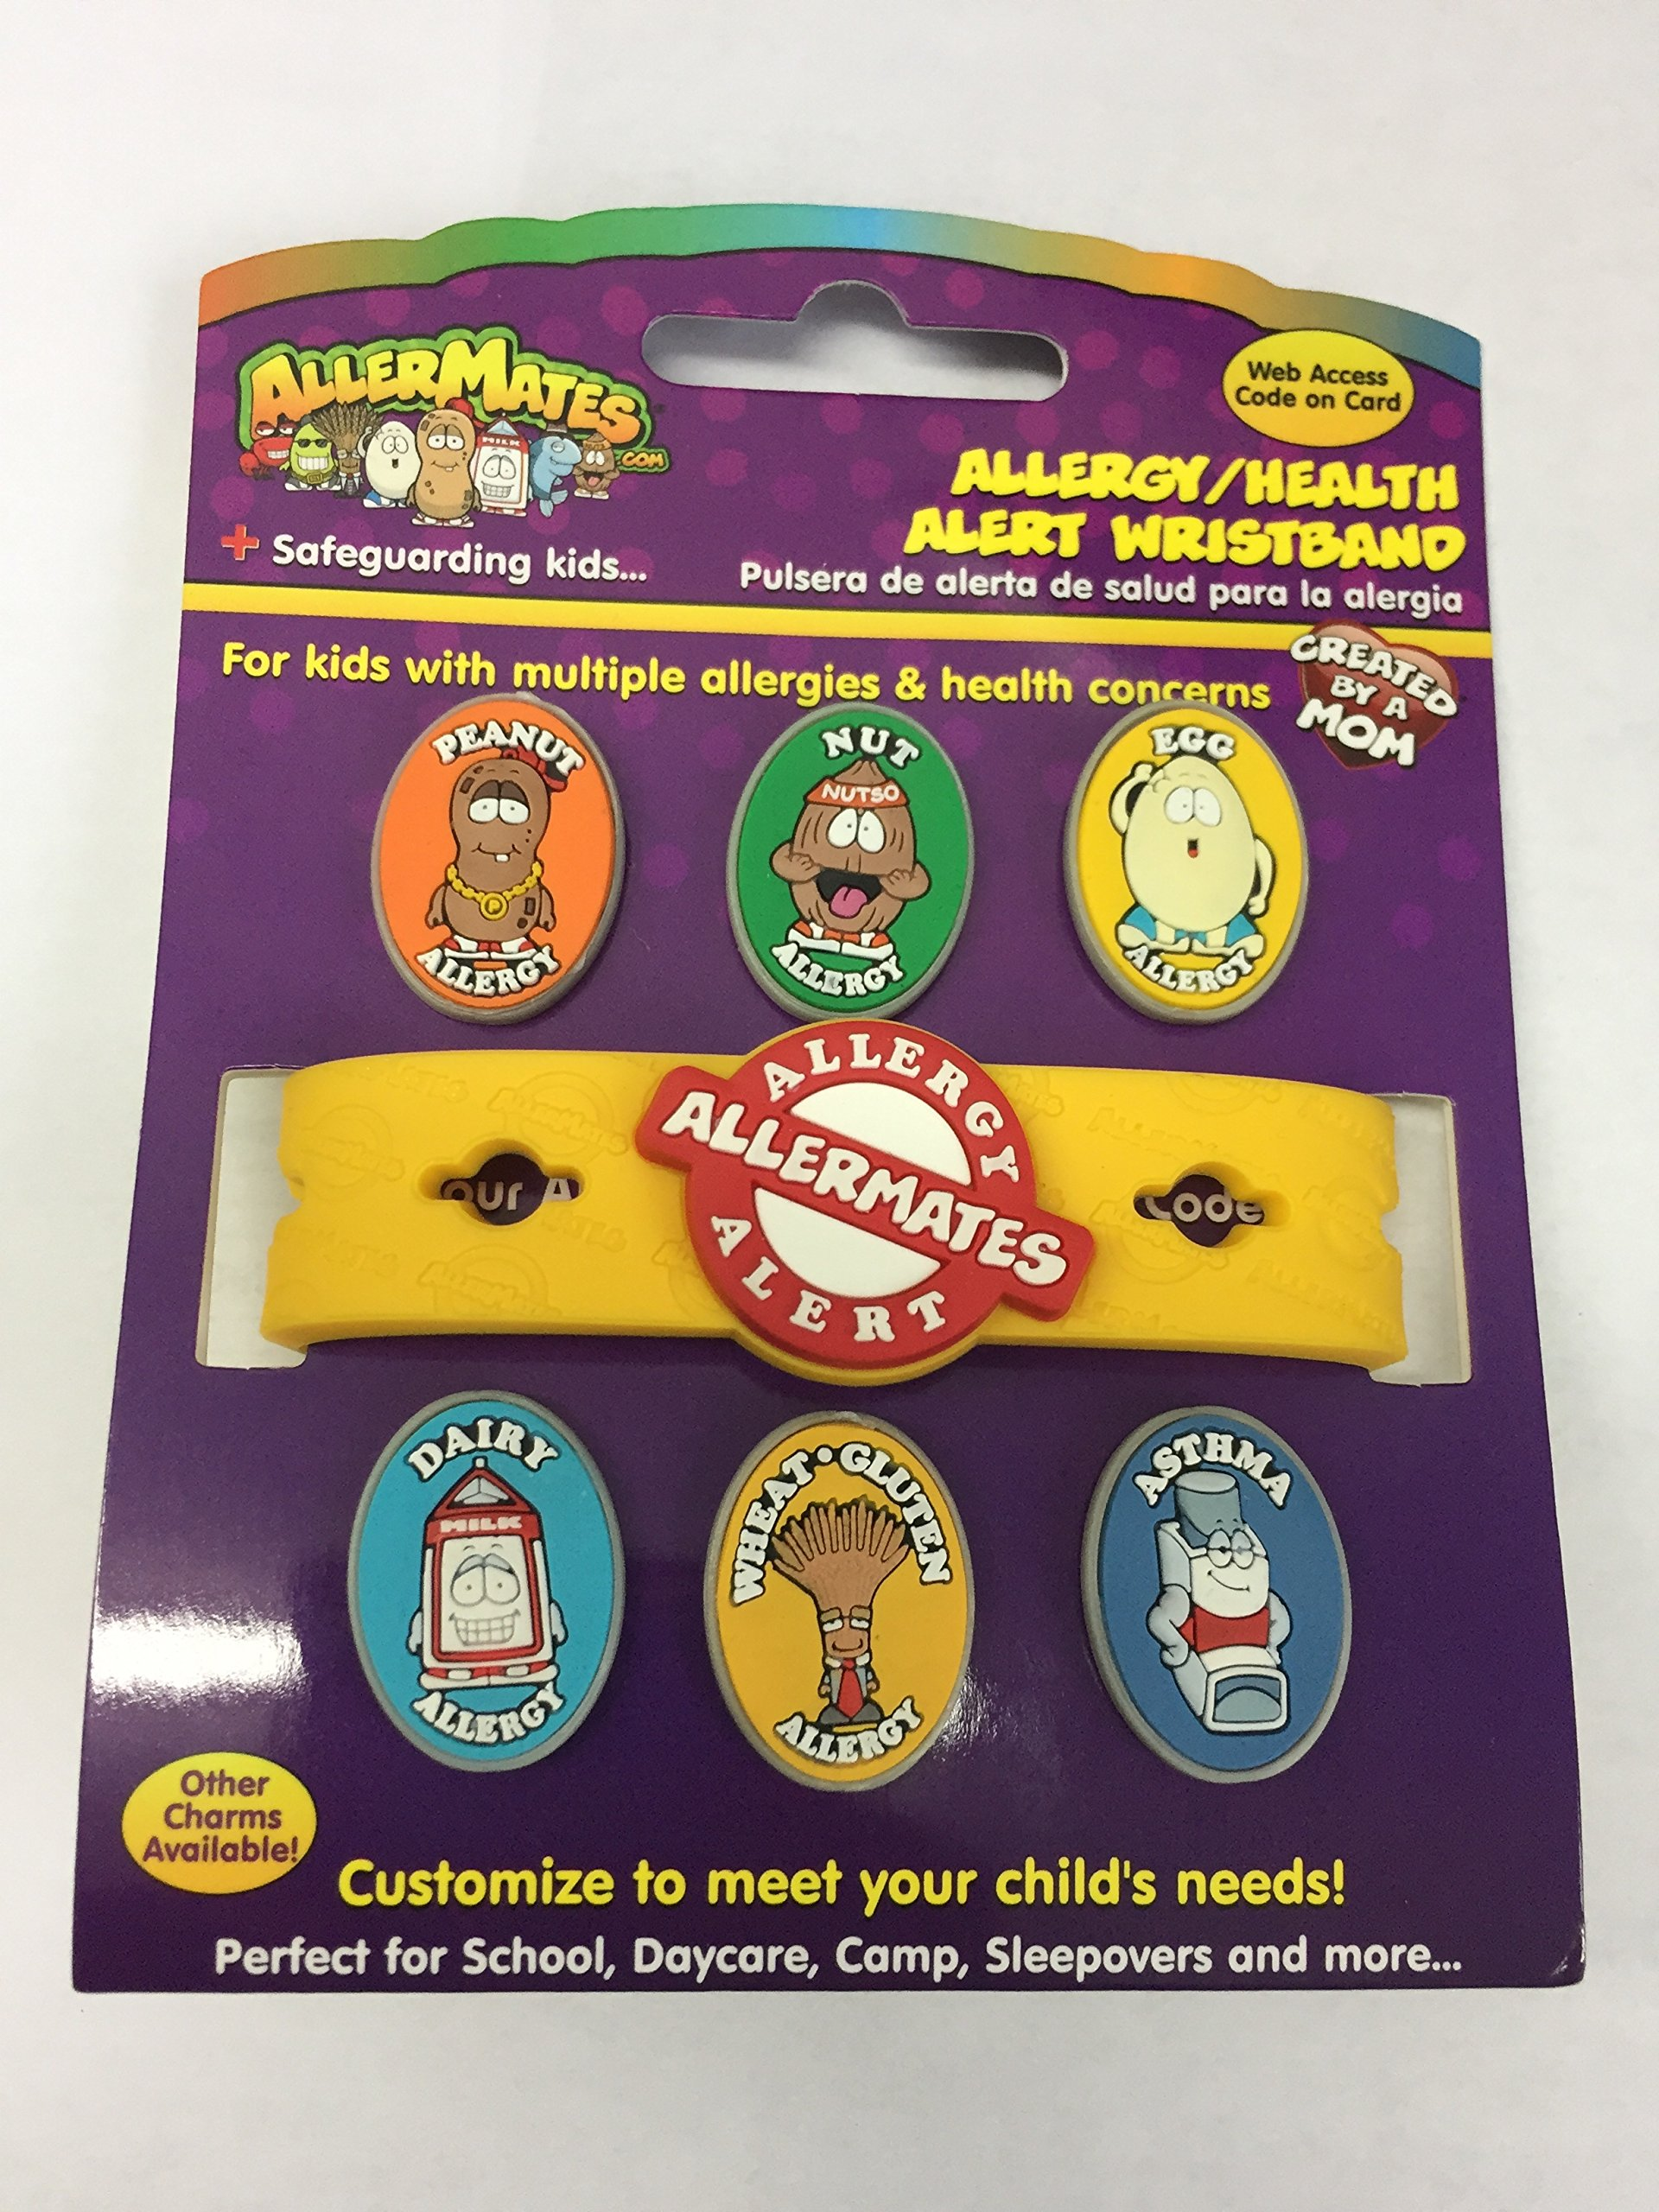 Allergy/Health Alert Wristband Without EpiPen Charm